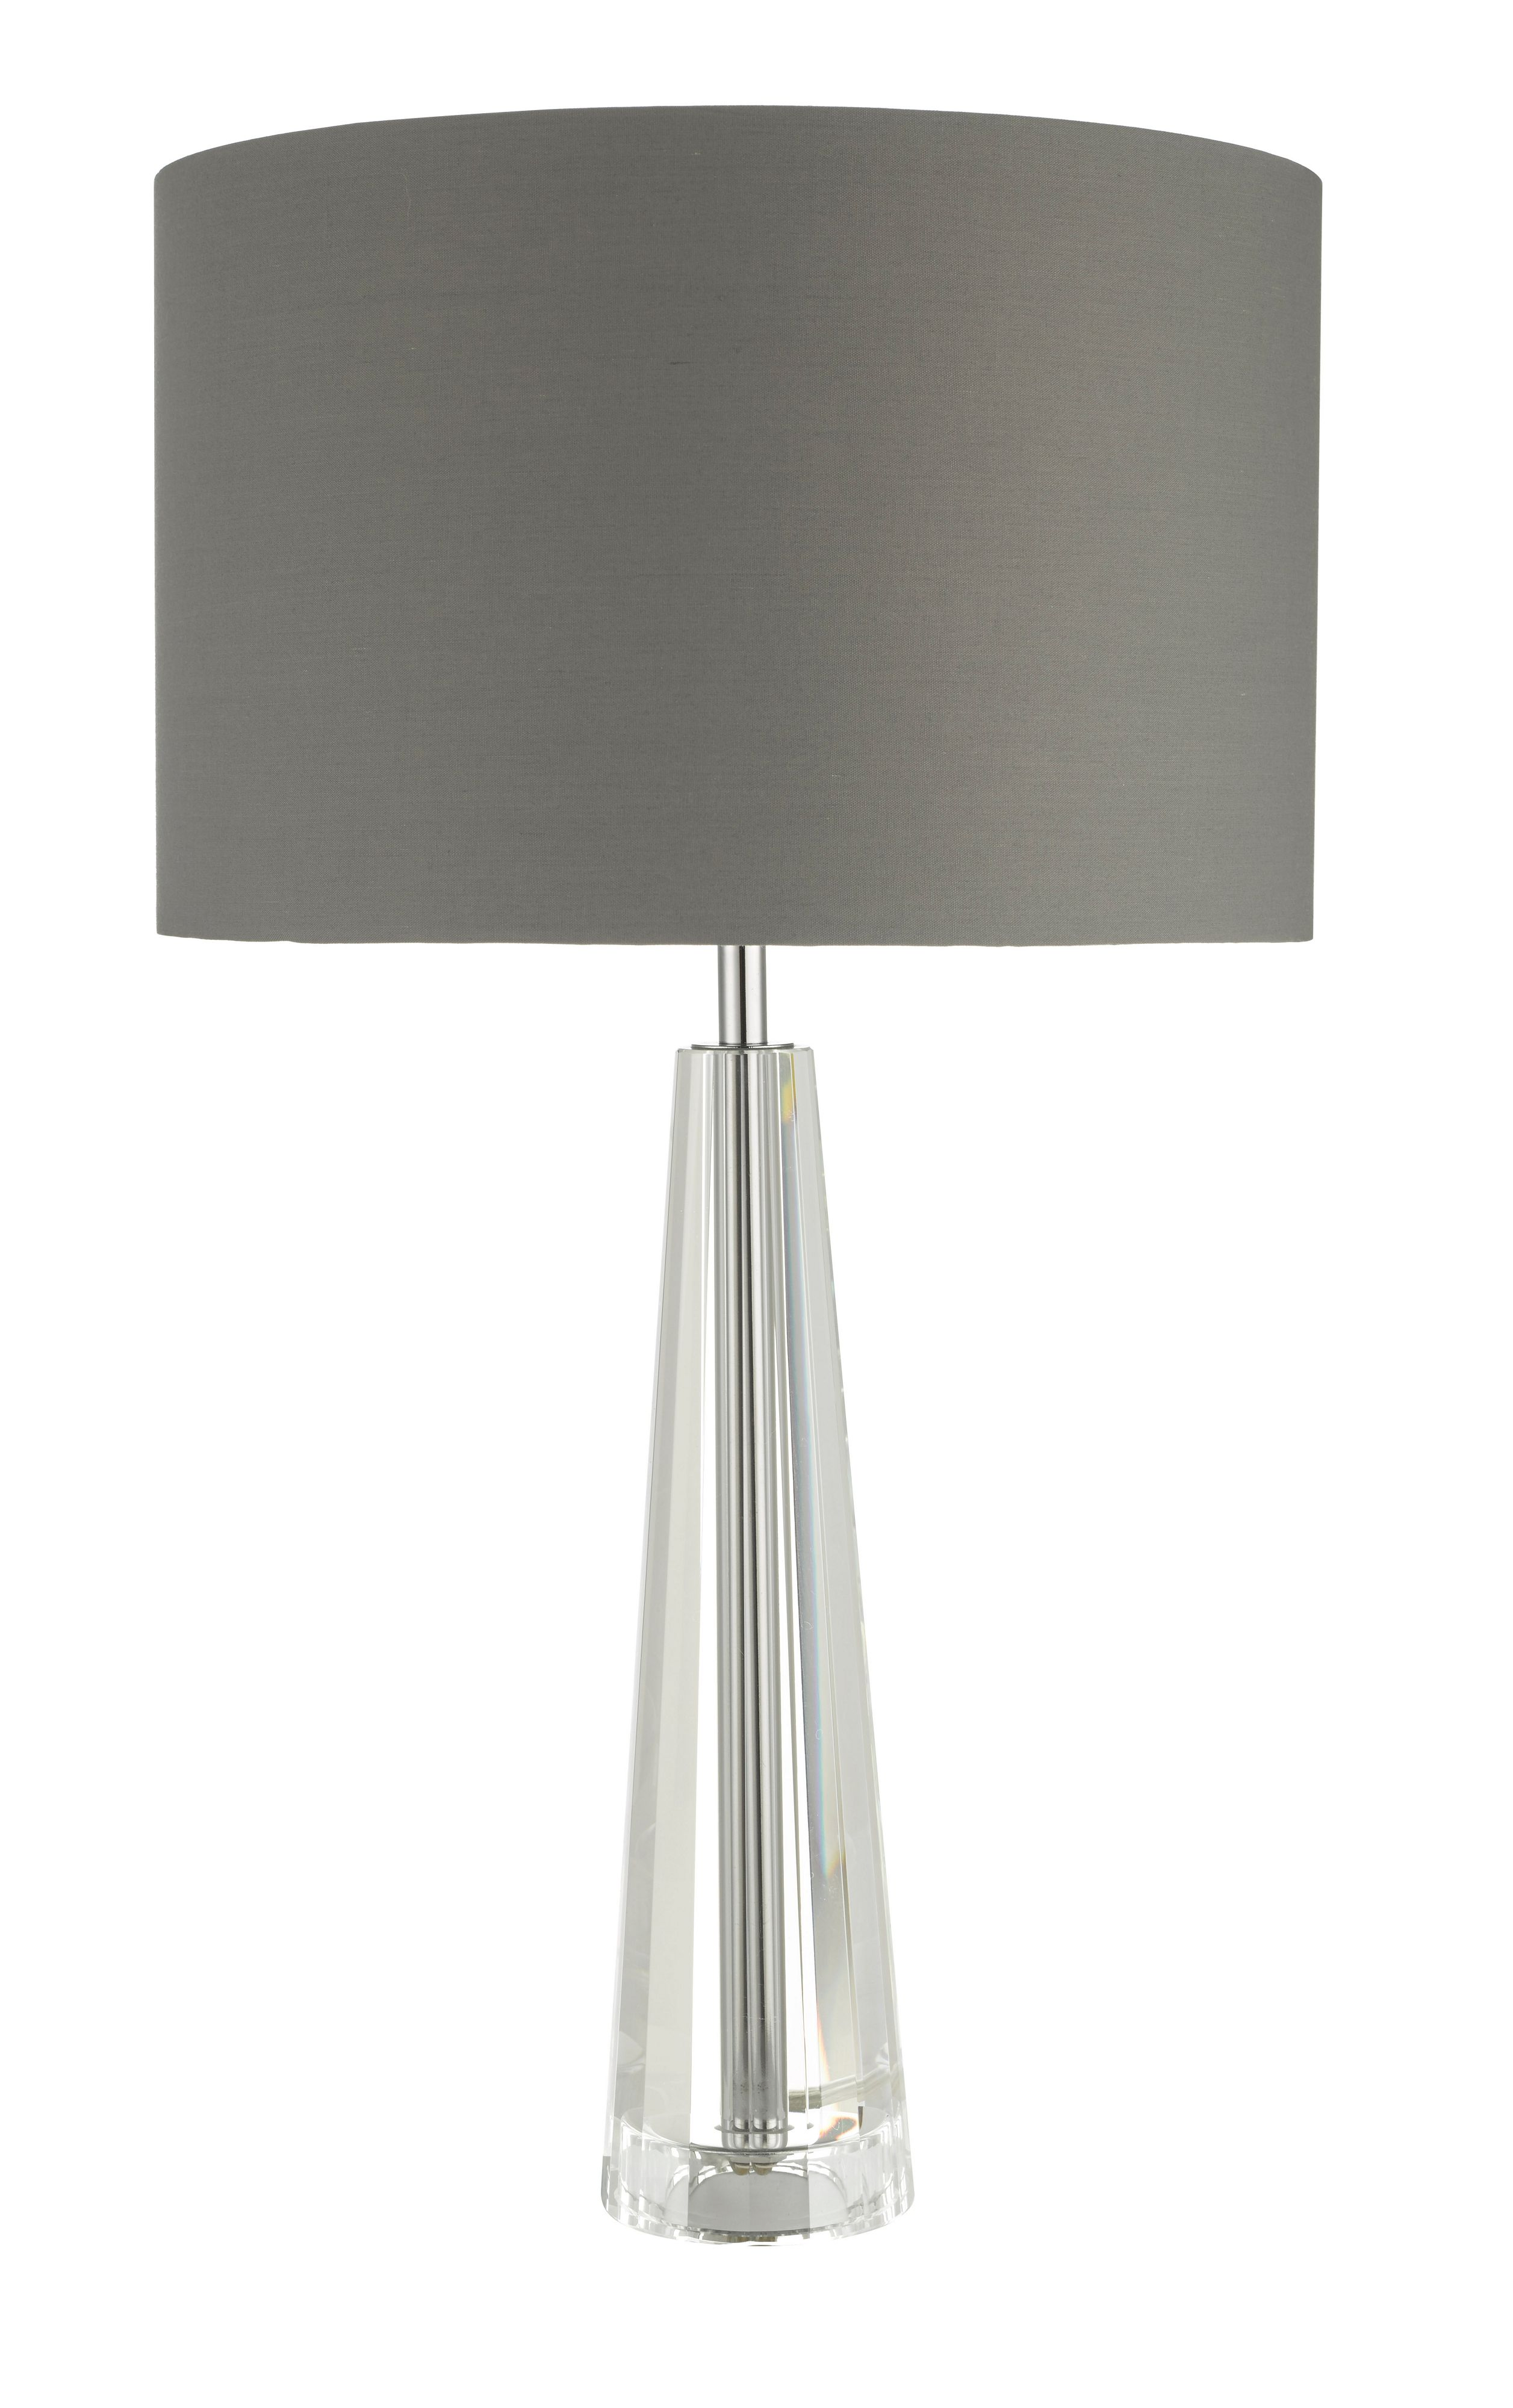 Casa Couture Aliona crystal lamp